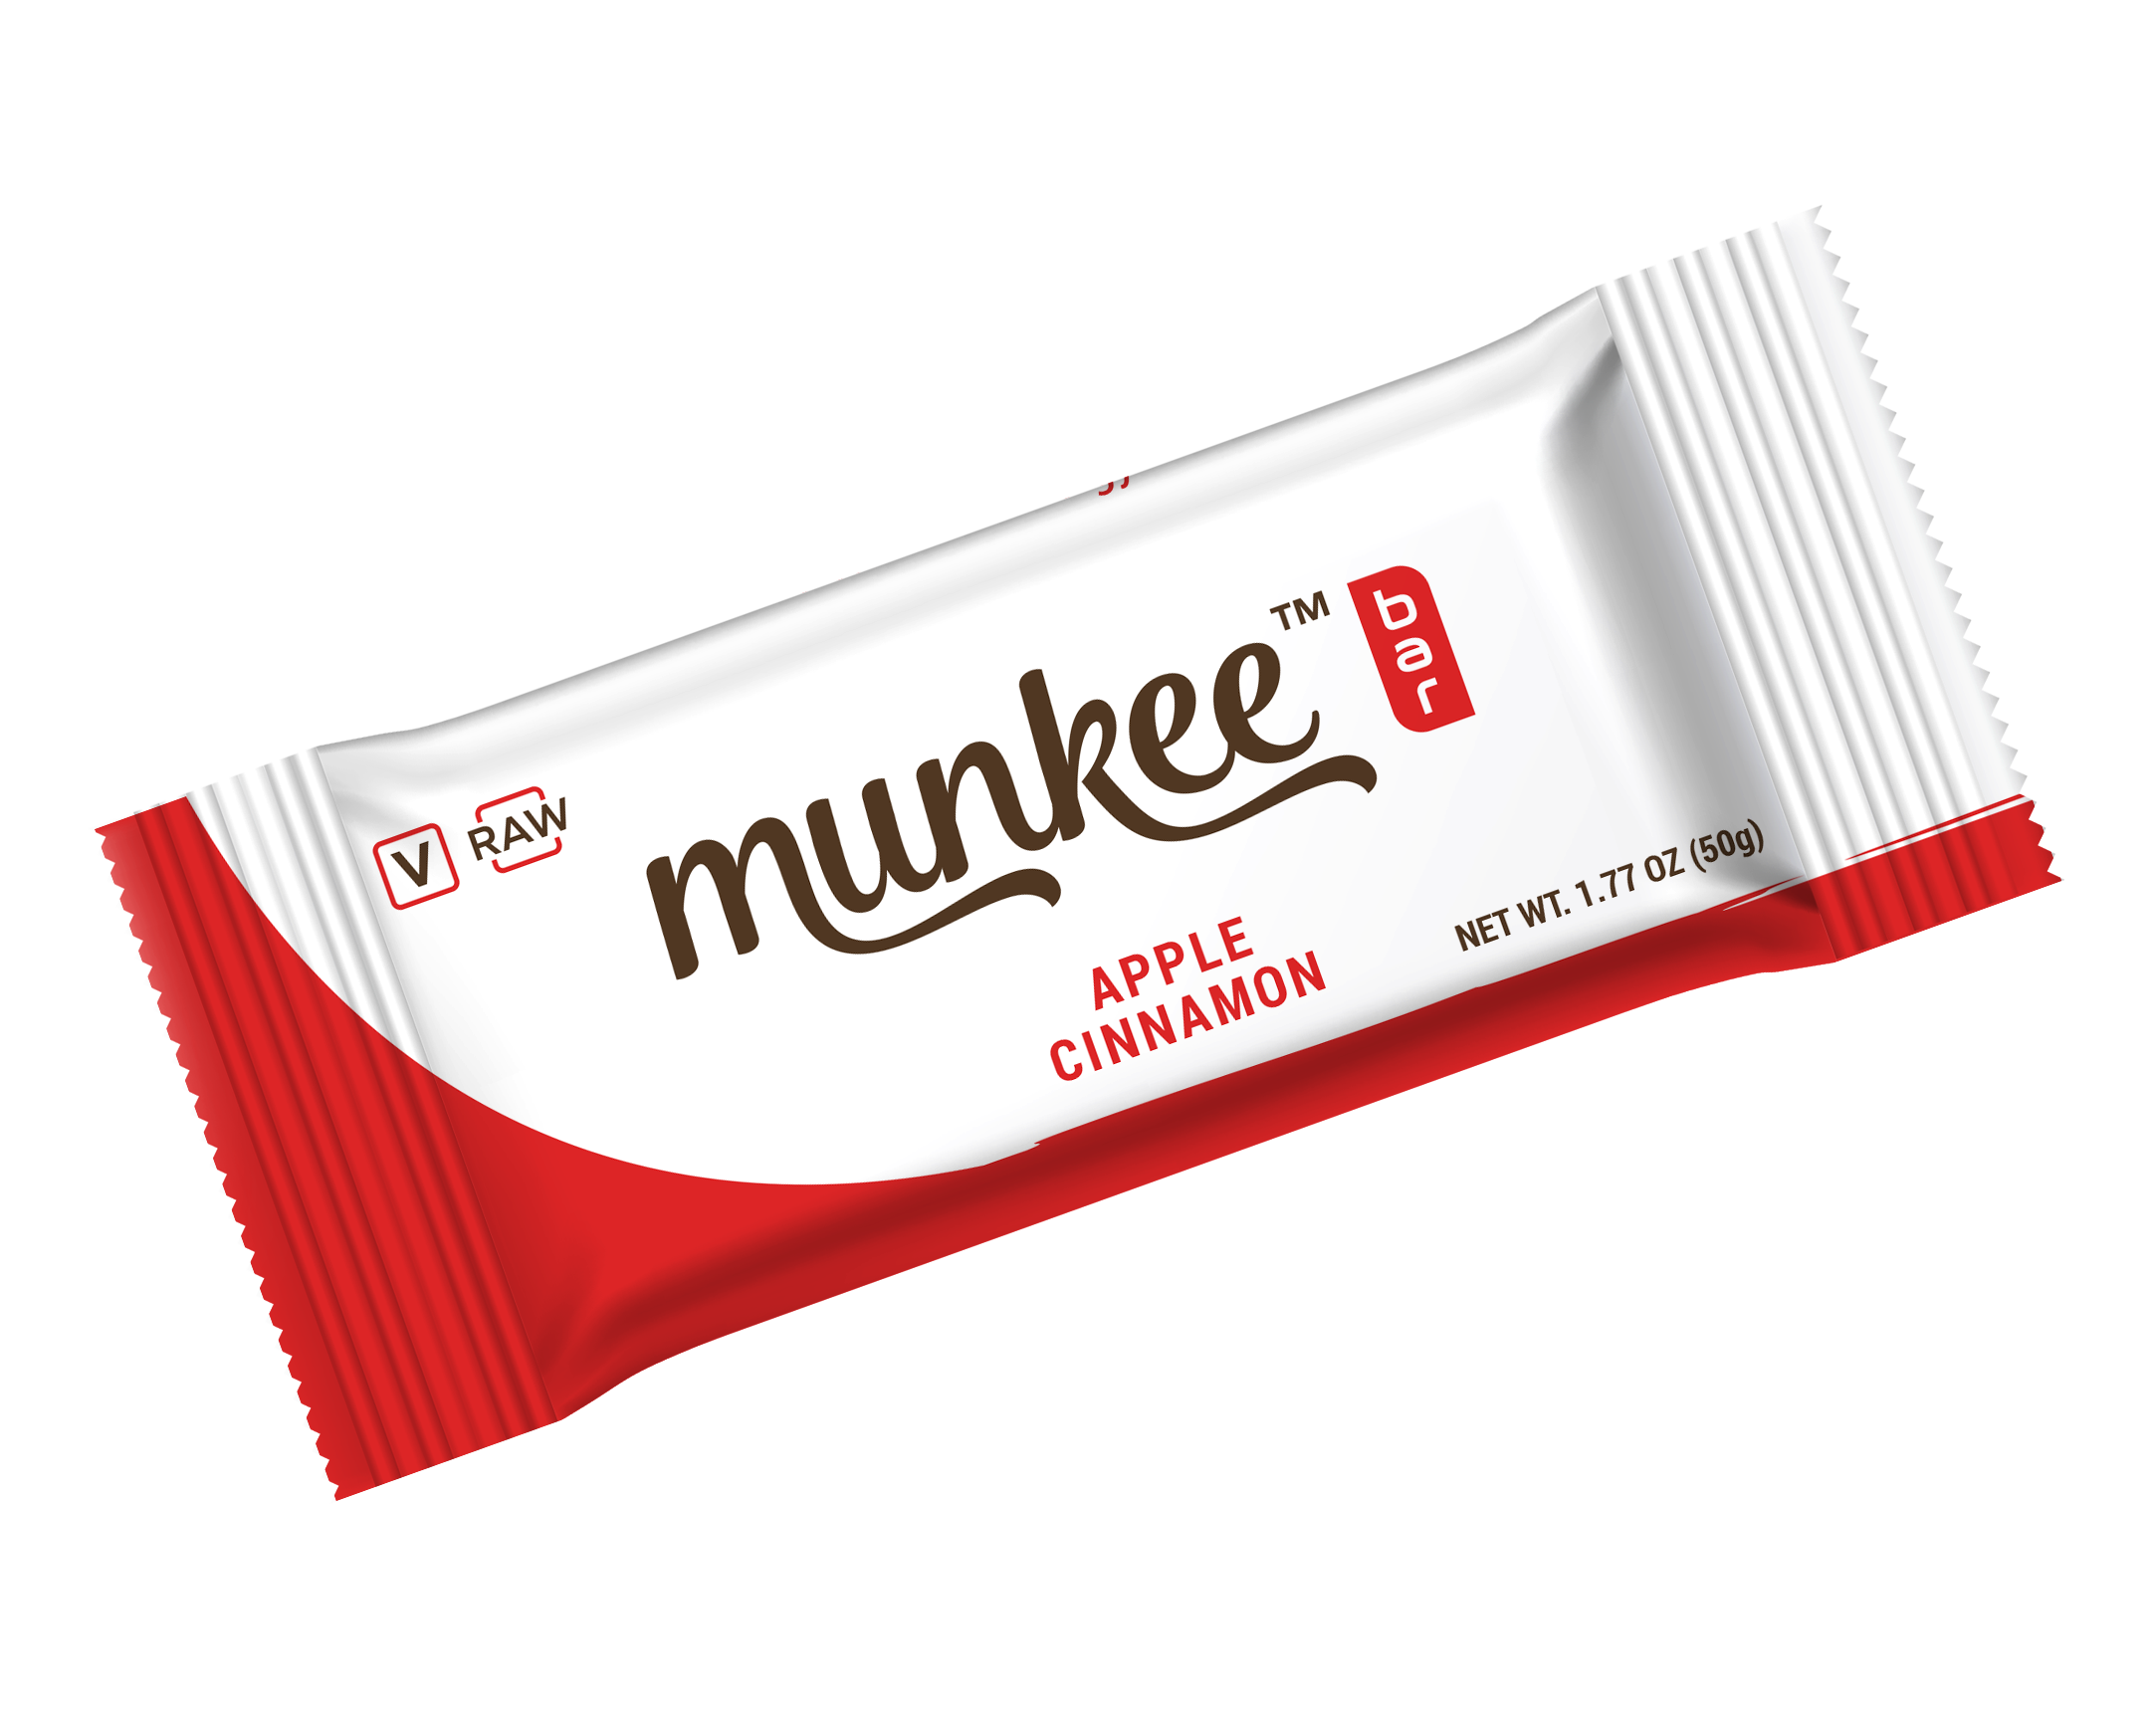 Munkee Bar Apple Cinnamon